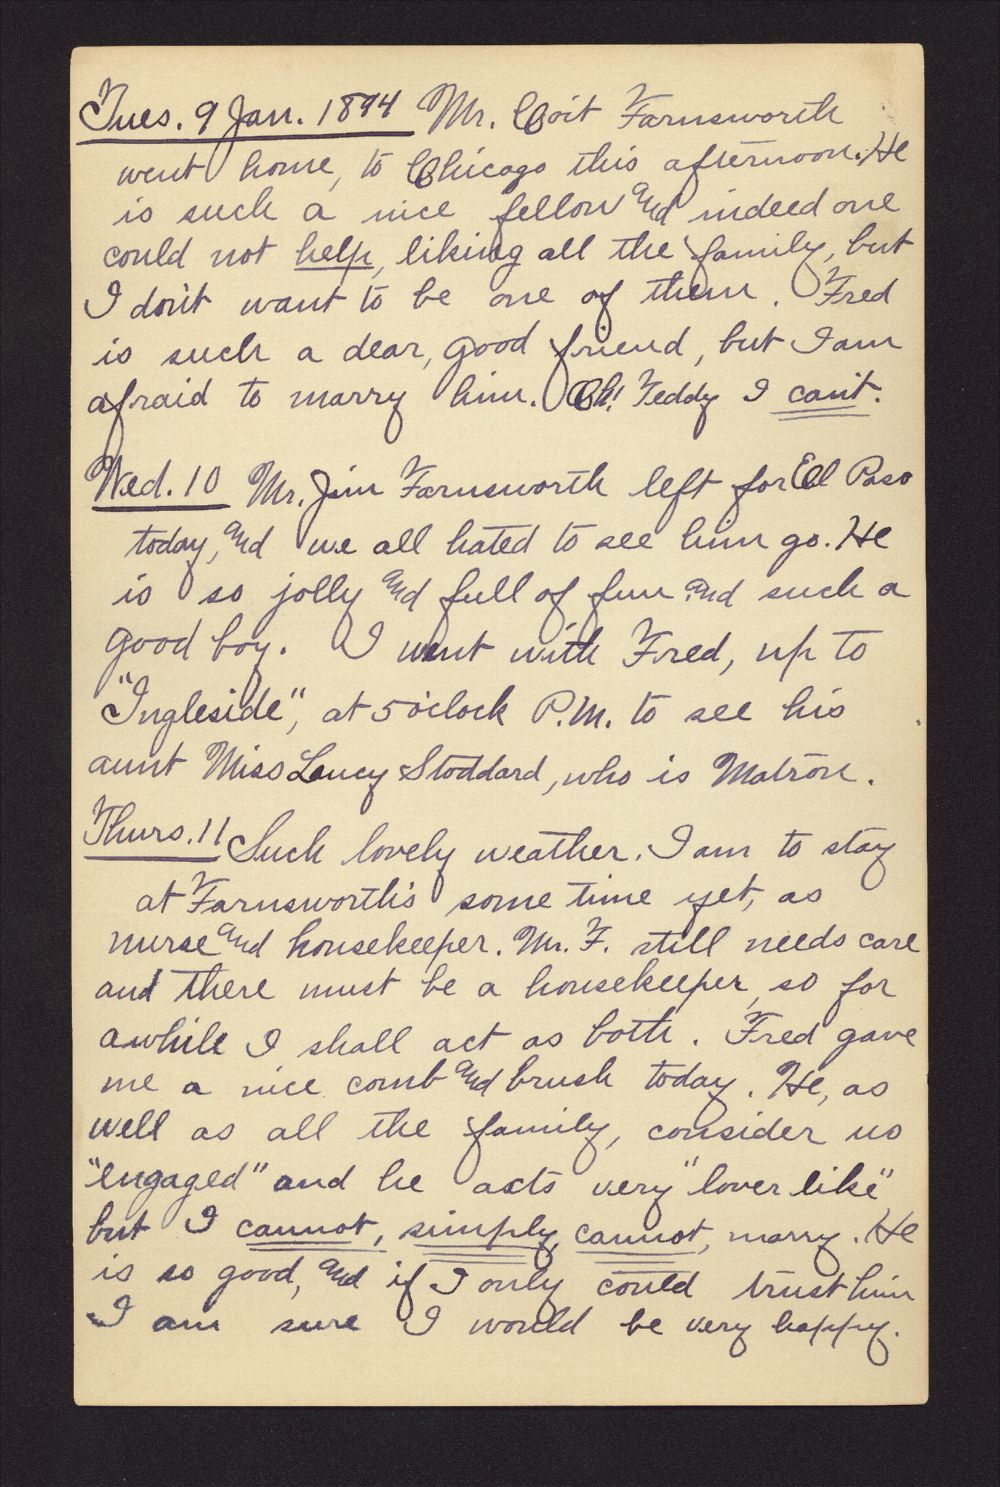 Martha Farnsworth diary - Jan 9, 1894